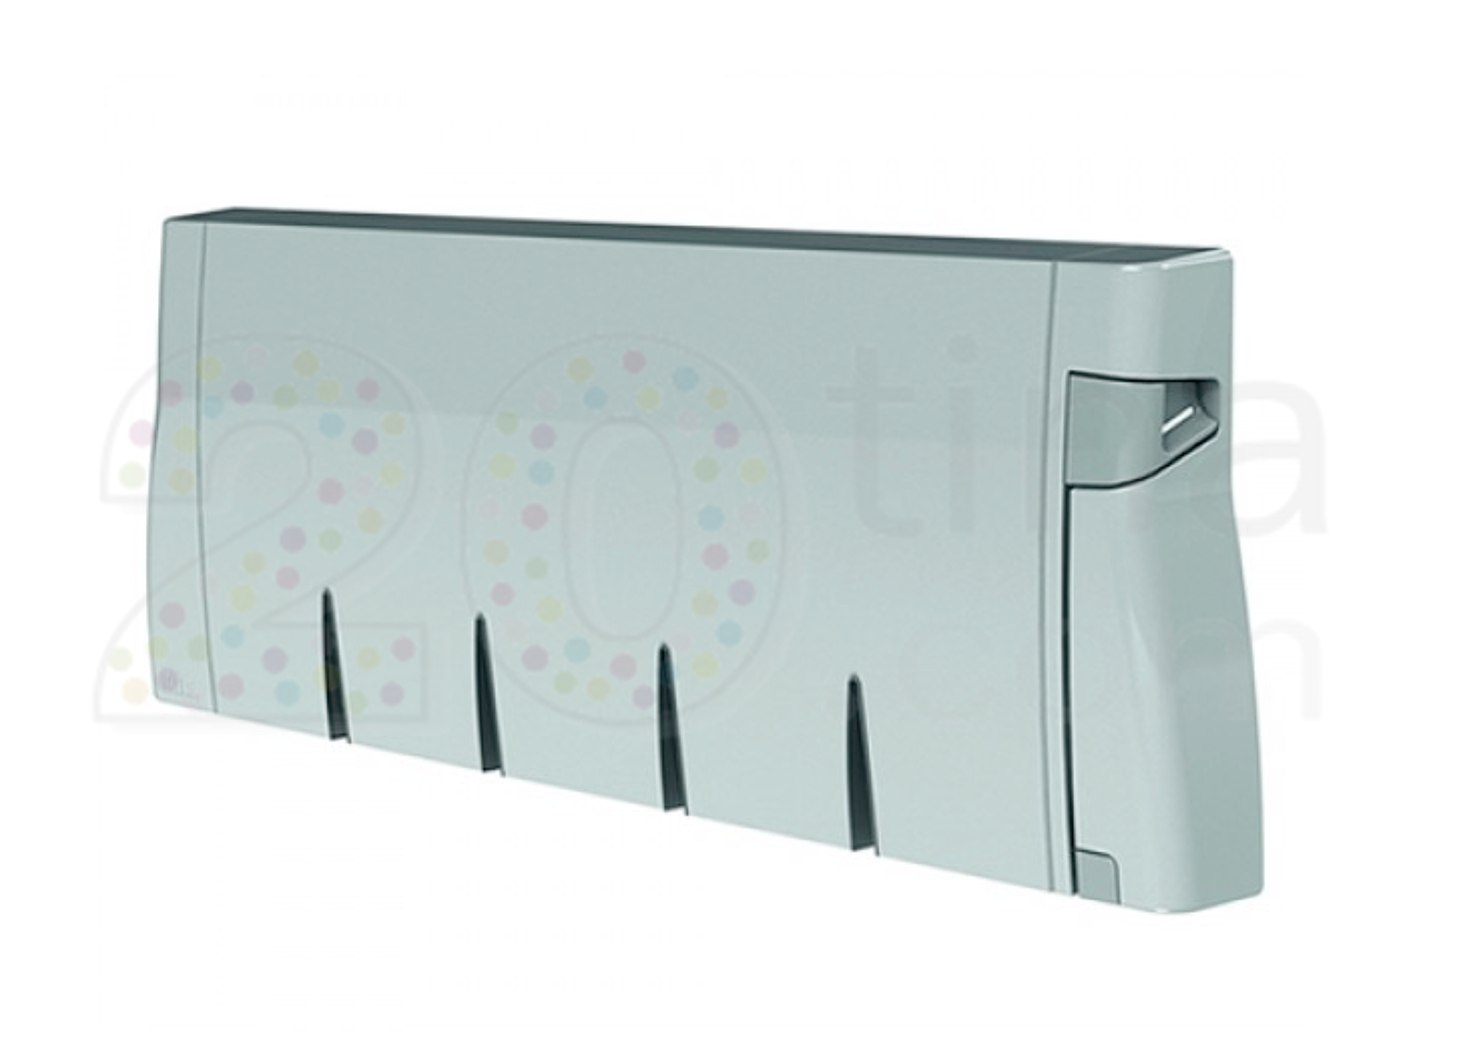 Etendoir linge r tractable solide et design slimy 4 ou - Etendoir a linge mural retractable ...